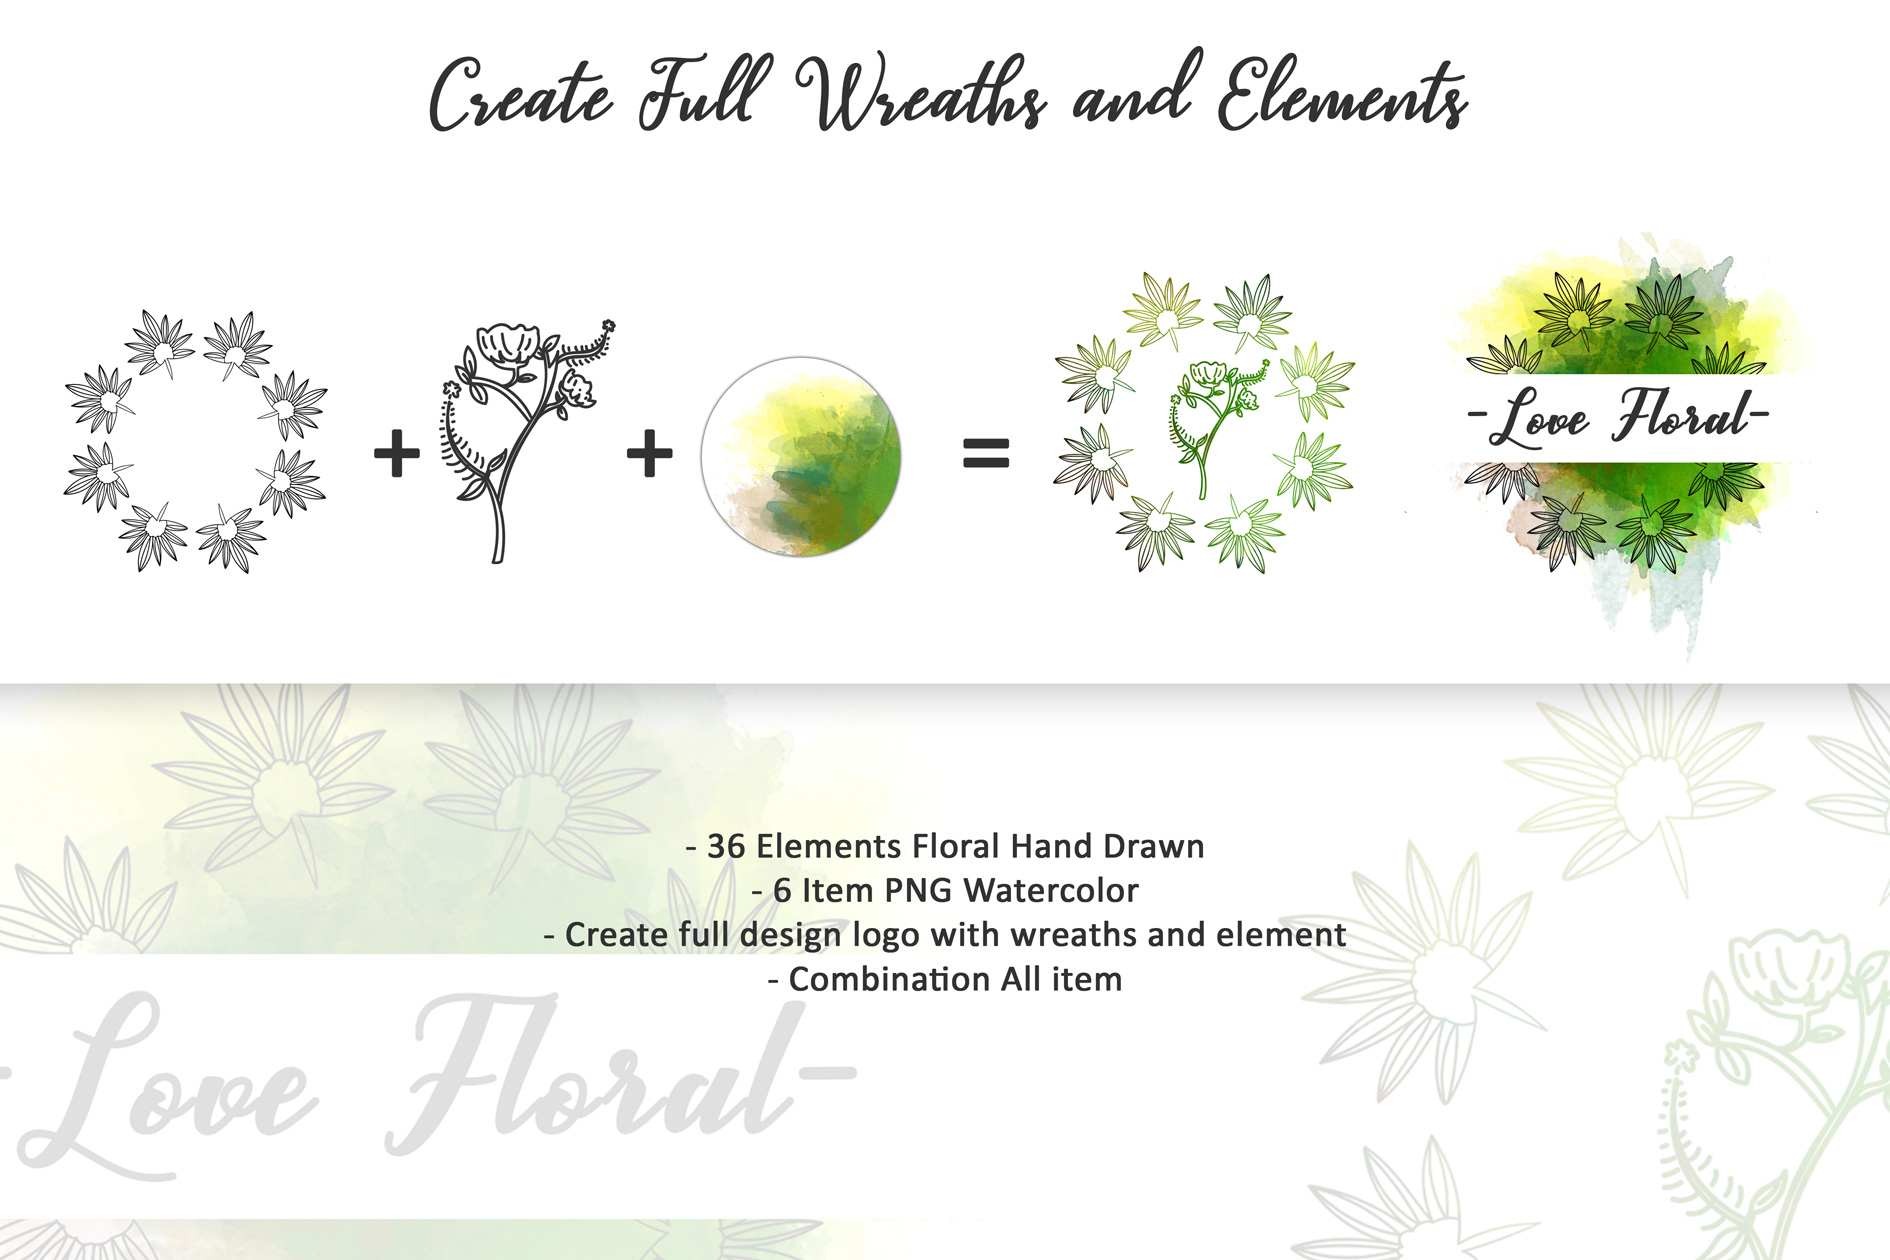 72 Hand Drawn Floral Wreaths example image 6